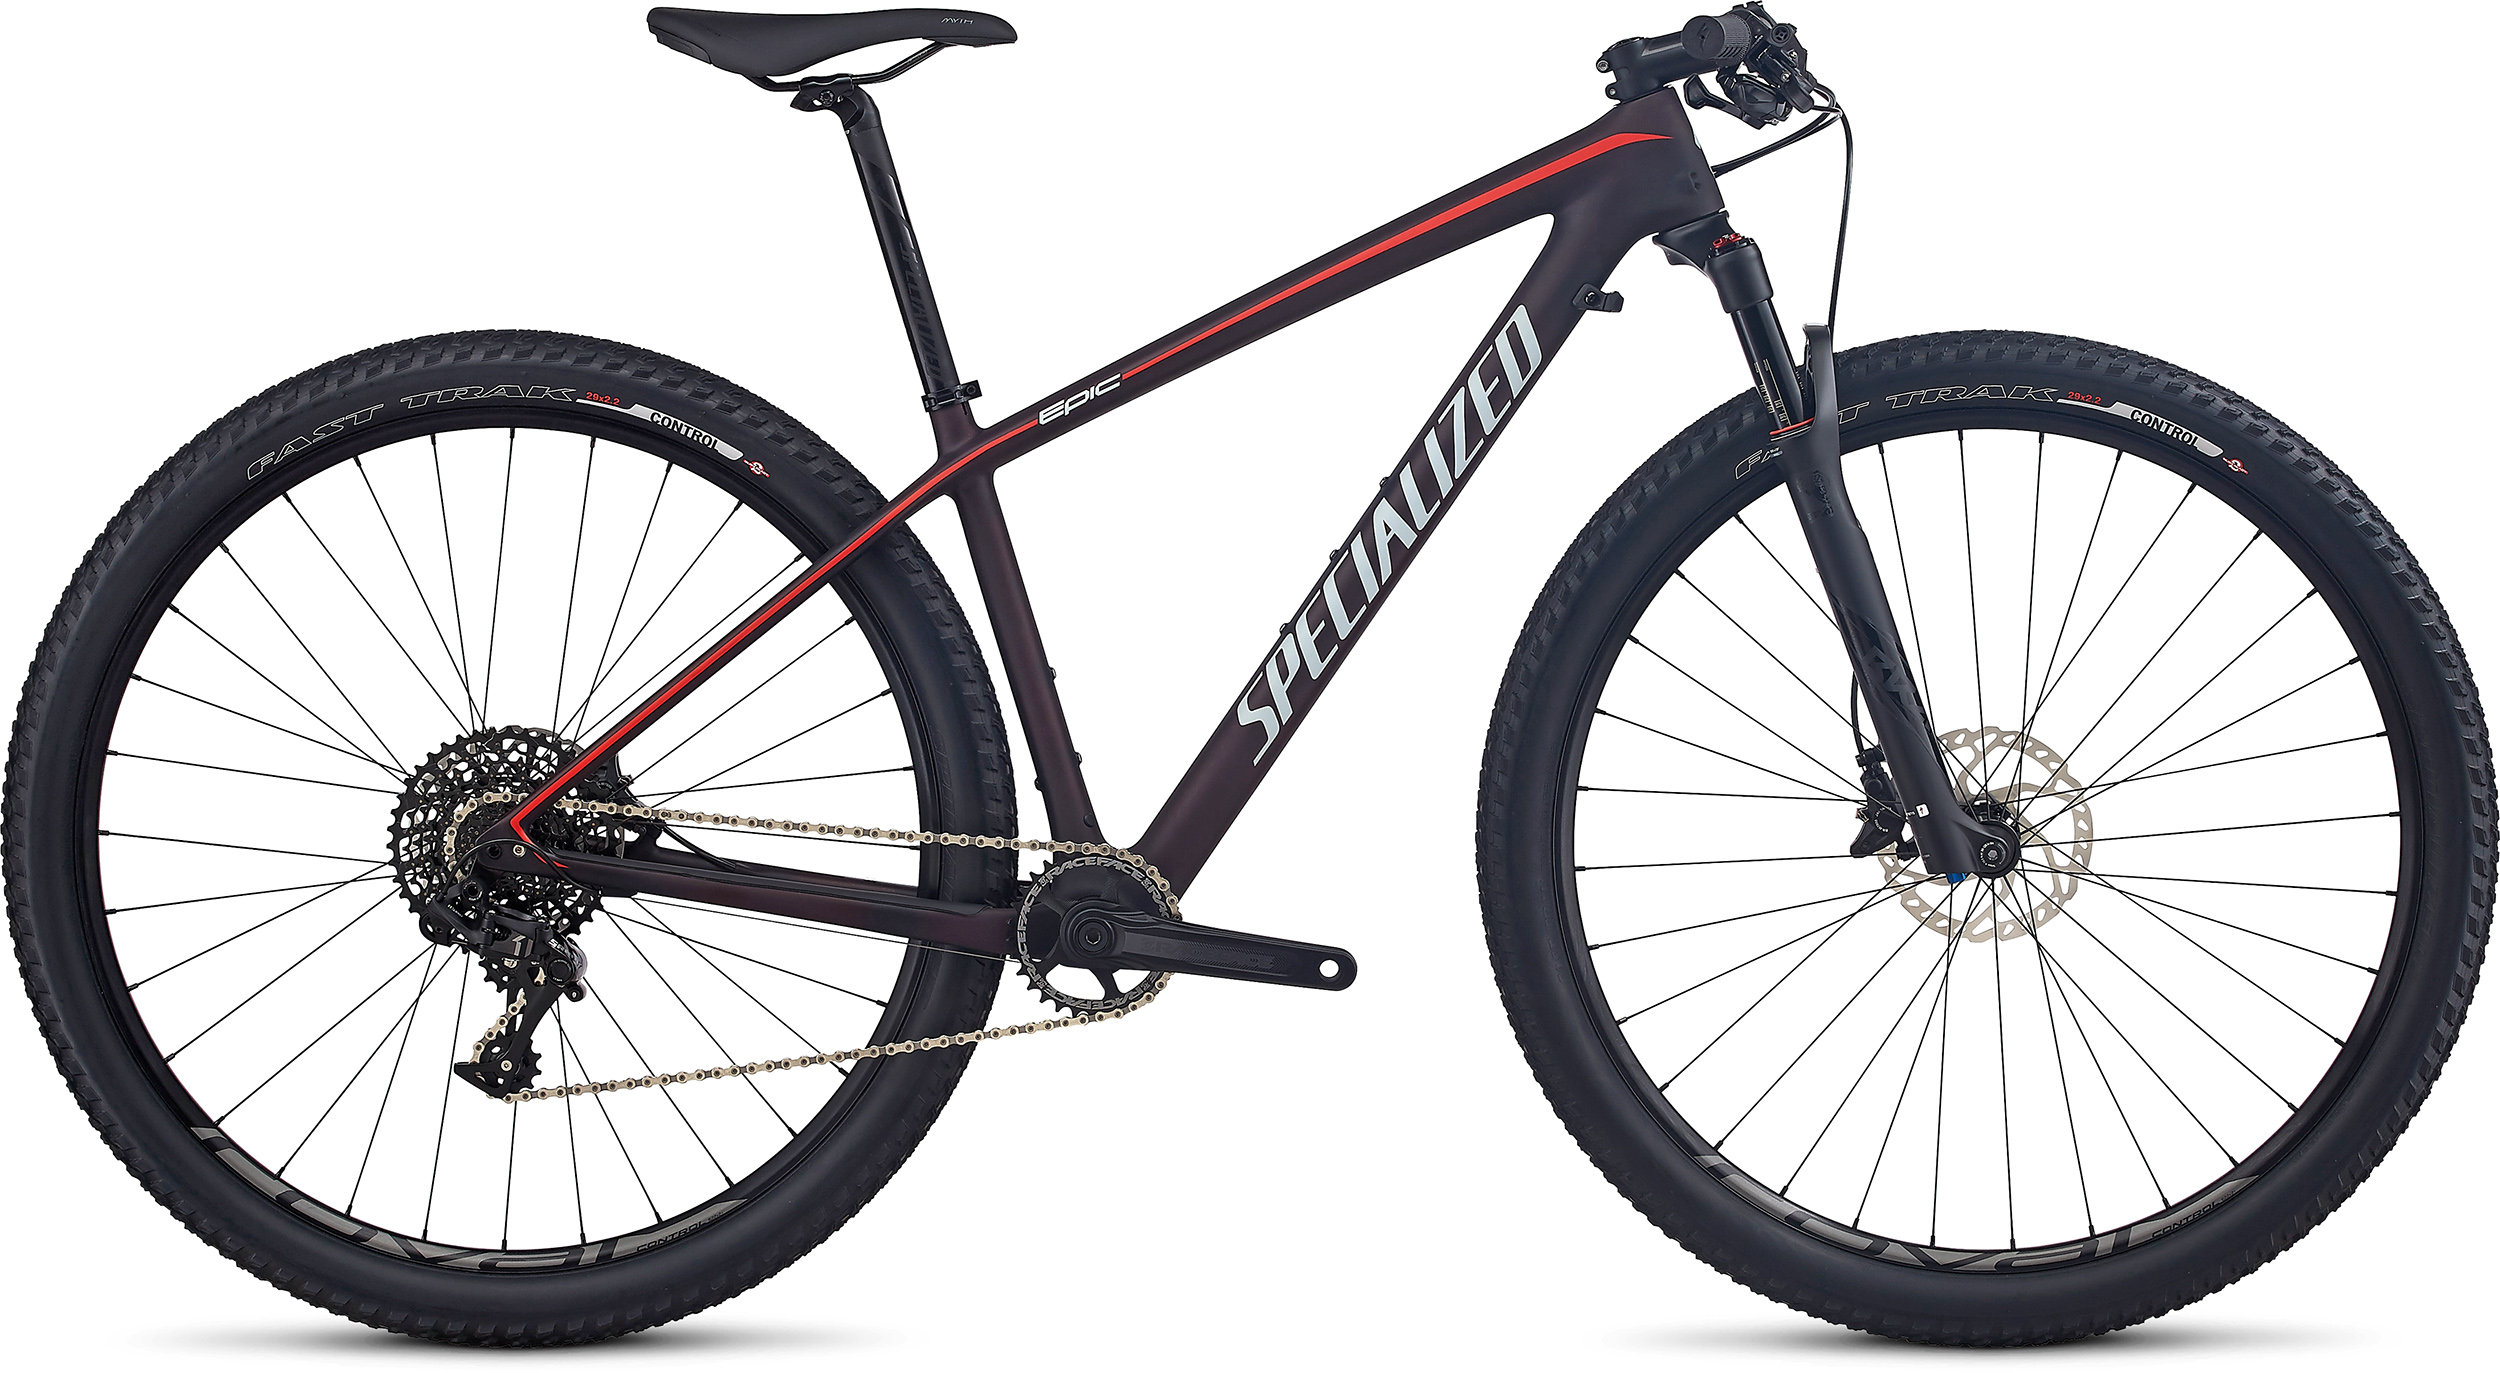 SPECIALIZED EPIC HT WMN EXPERT CARBON WC 29 REDFLKTNT/NRDCRED/BBYBLU L - Alpha Bikes